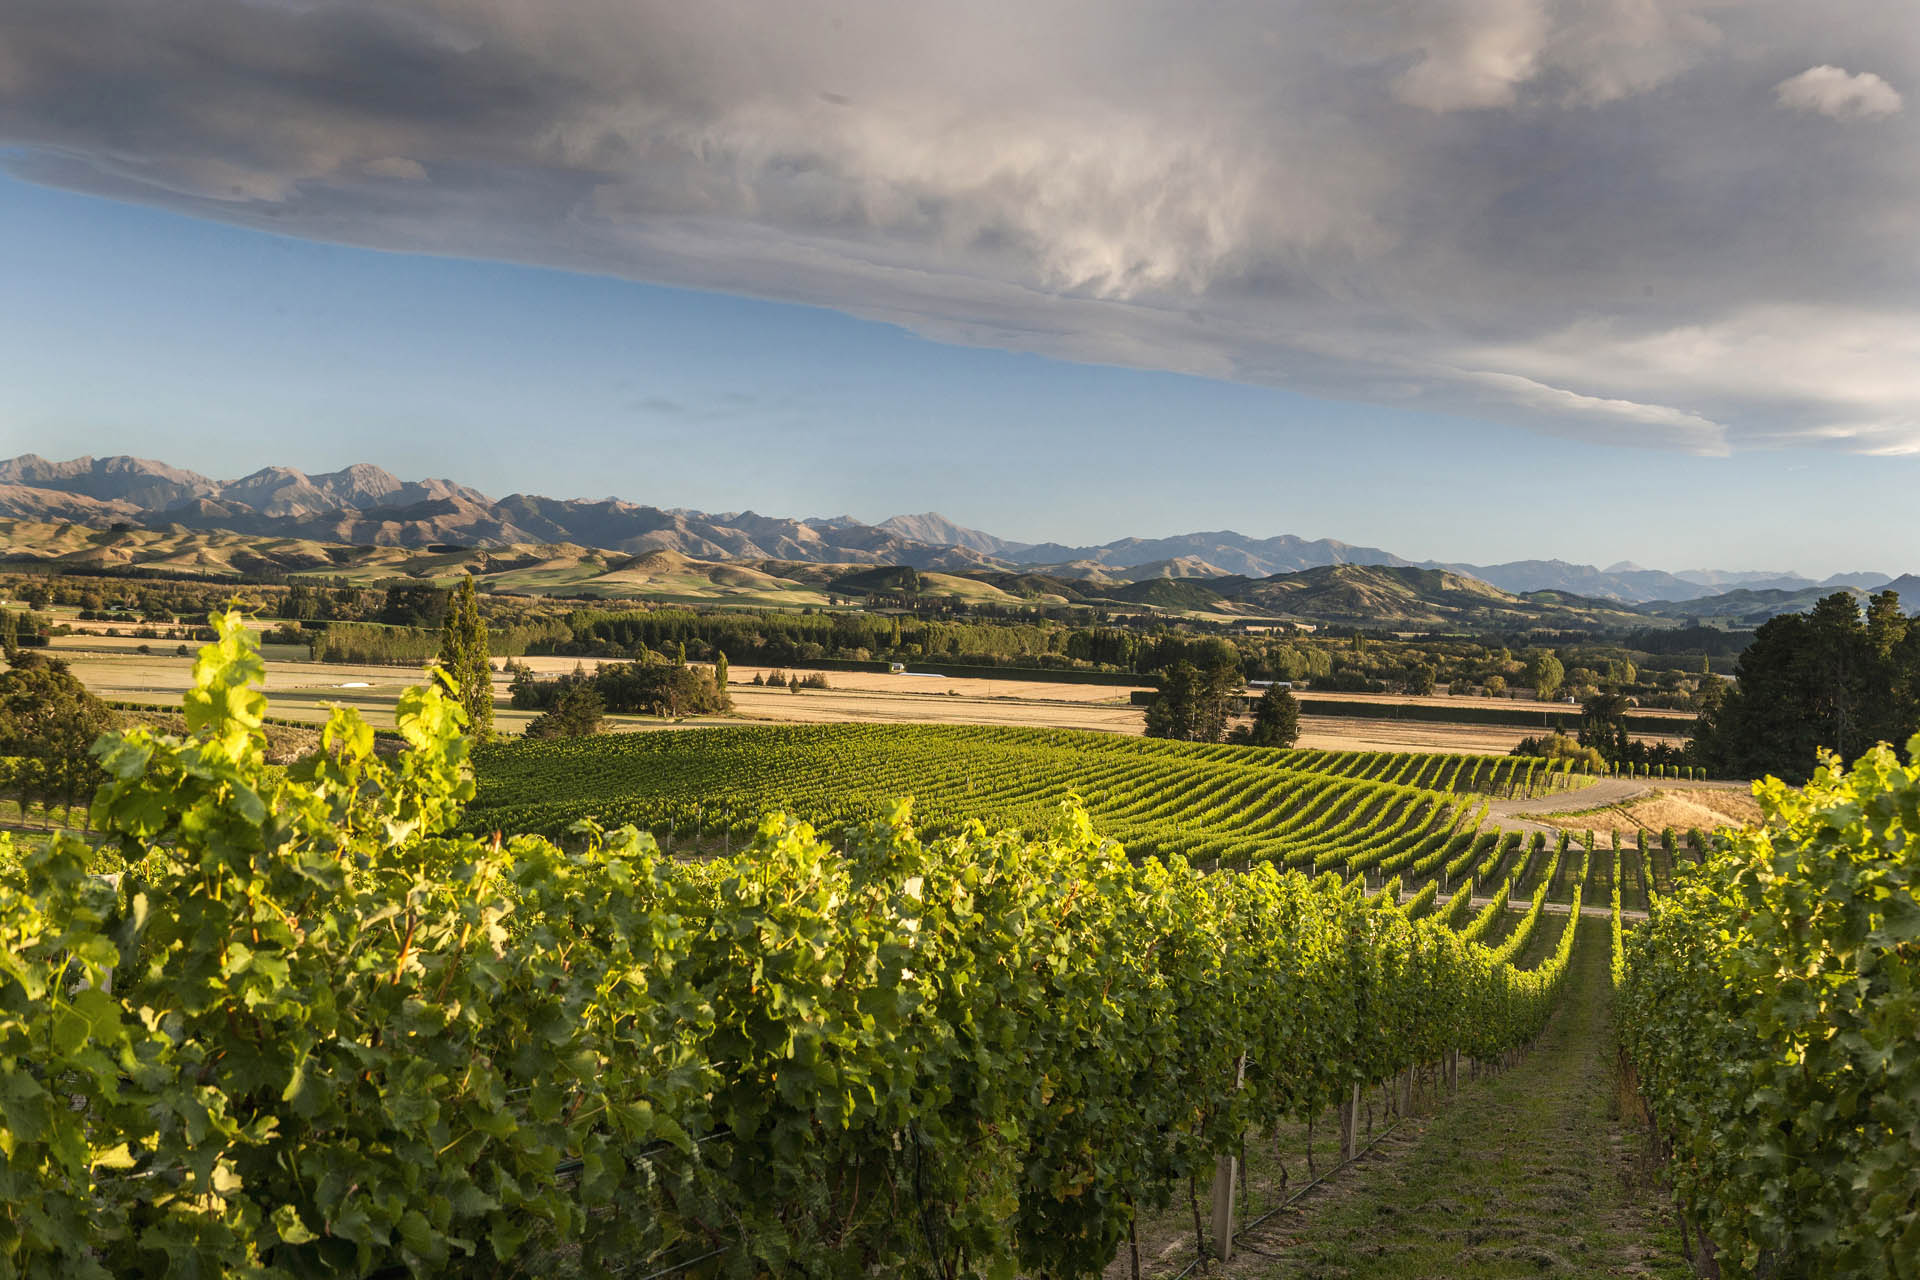 The up-and-coming Waipara wine region north of Christchurch is like many Kiwi wine areas in that wine touring by bike is popular.